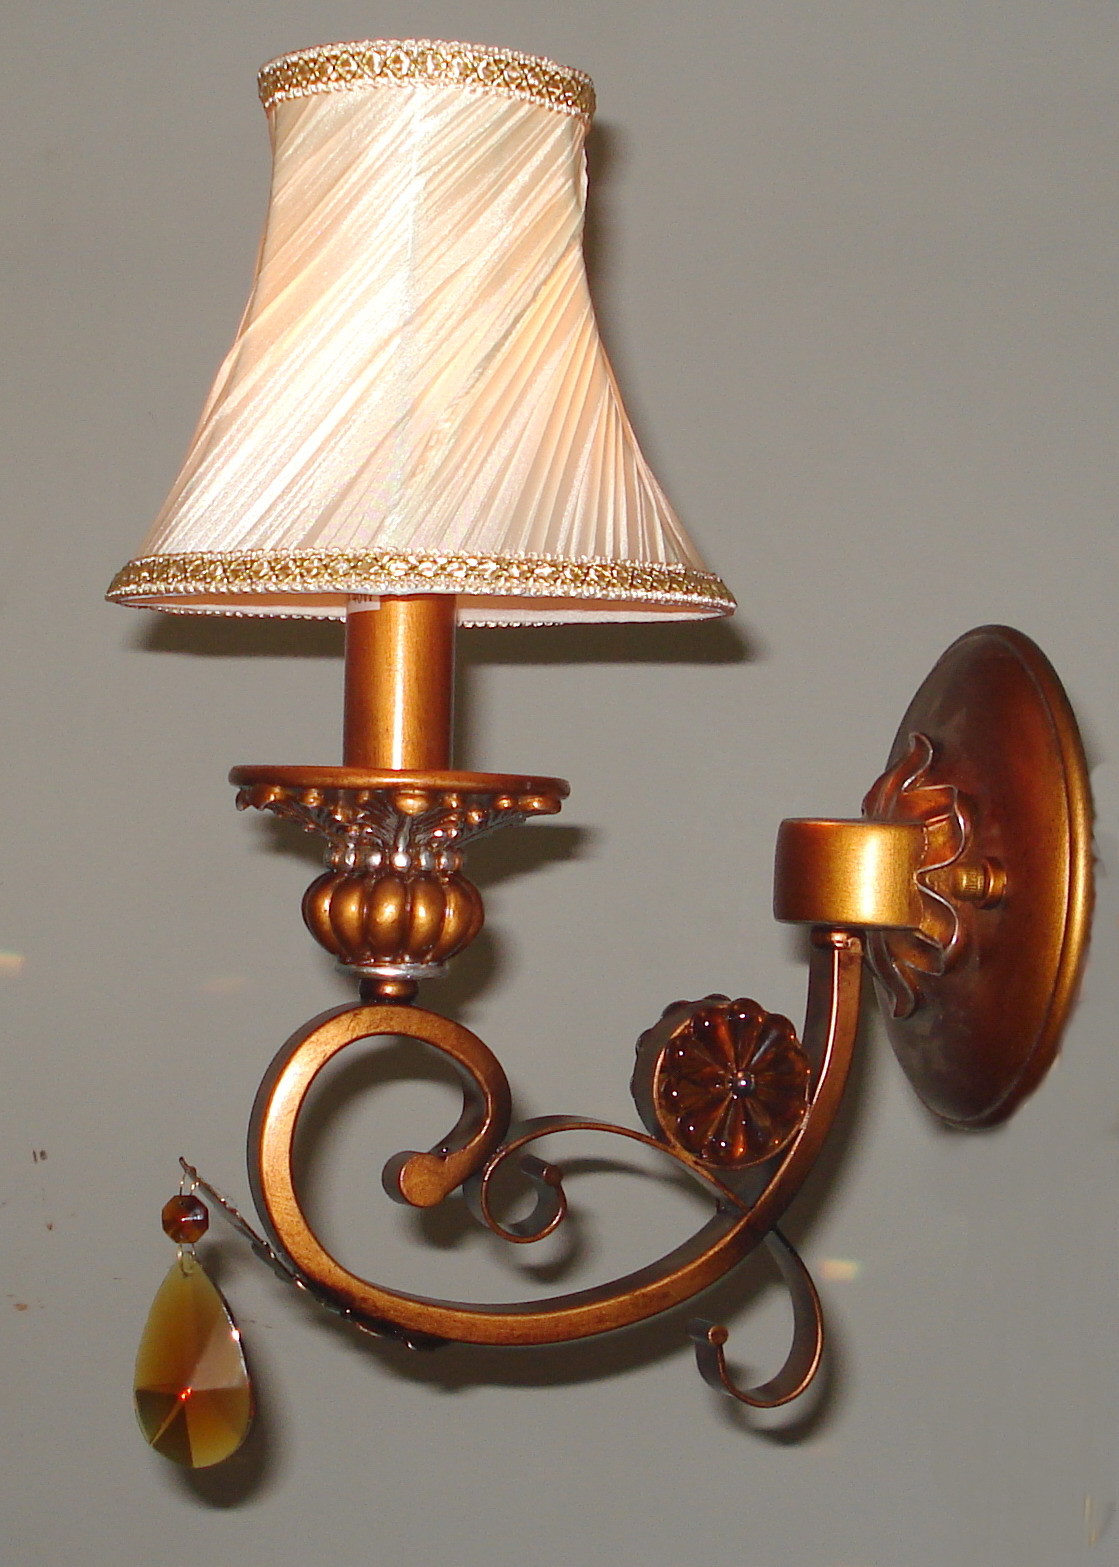 1-Light Printed Cloth Art Cover Copper Body Antique Wall Lamps with Crystal